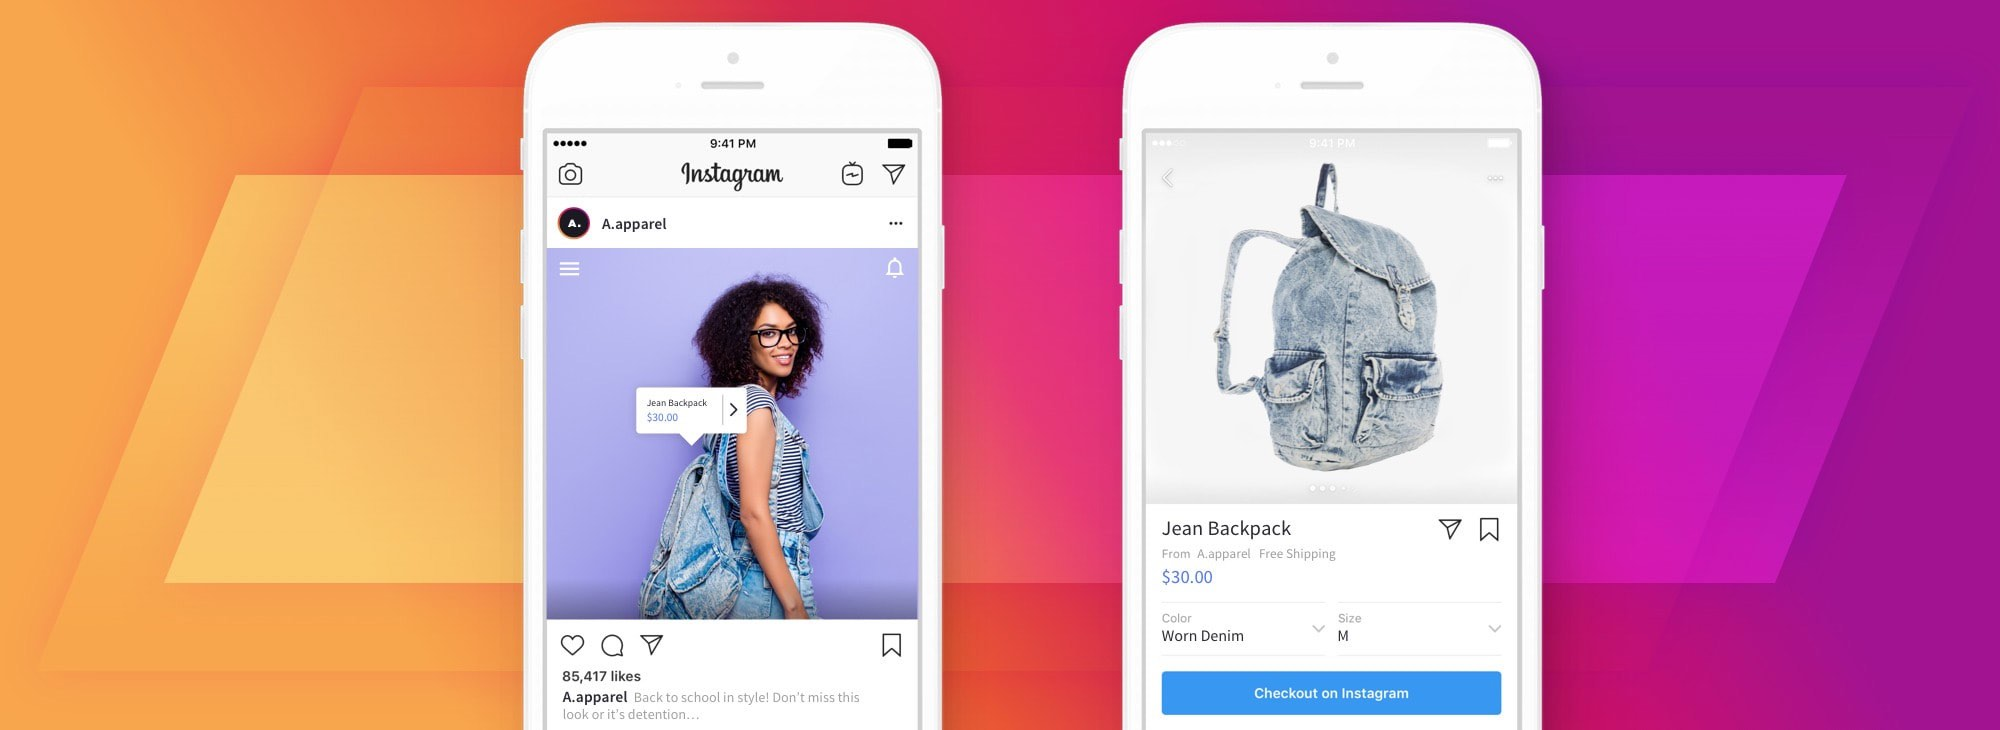 BigCommerce Big News: Checkout on Instagram